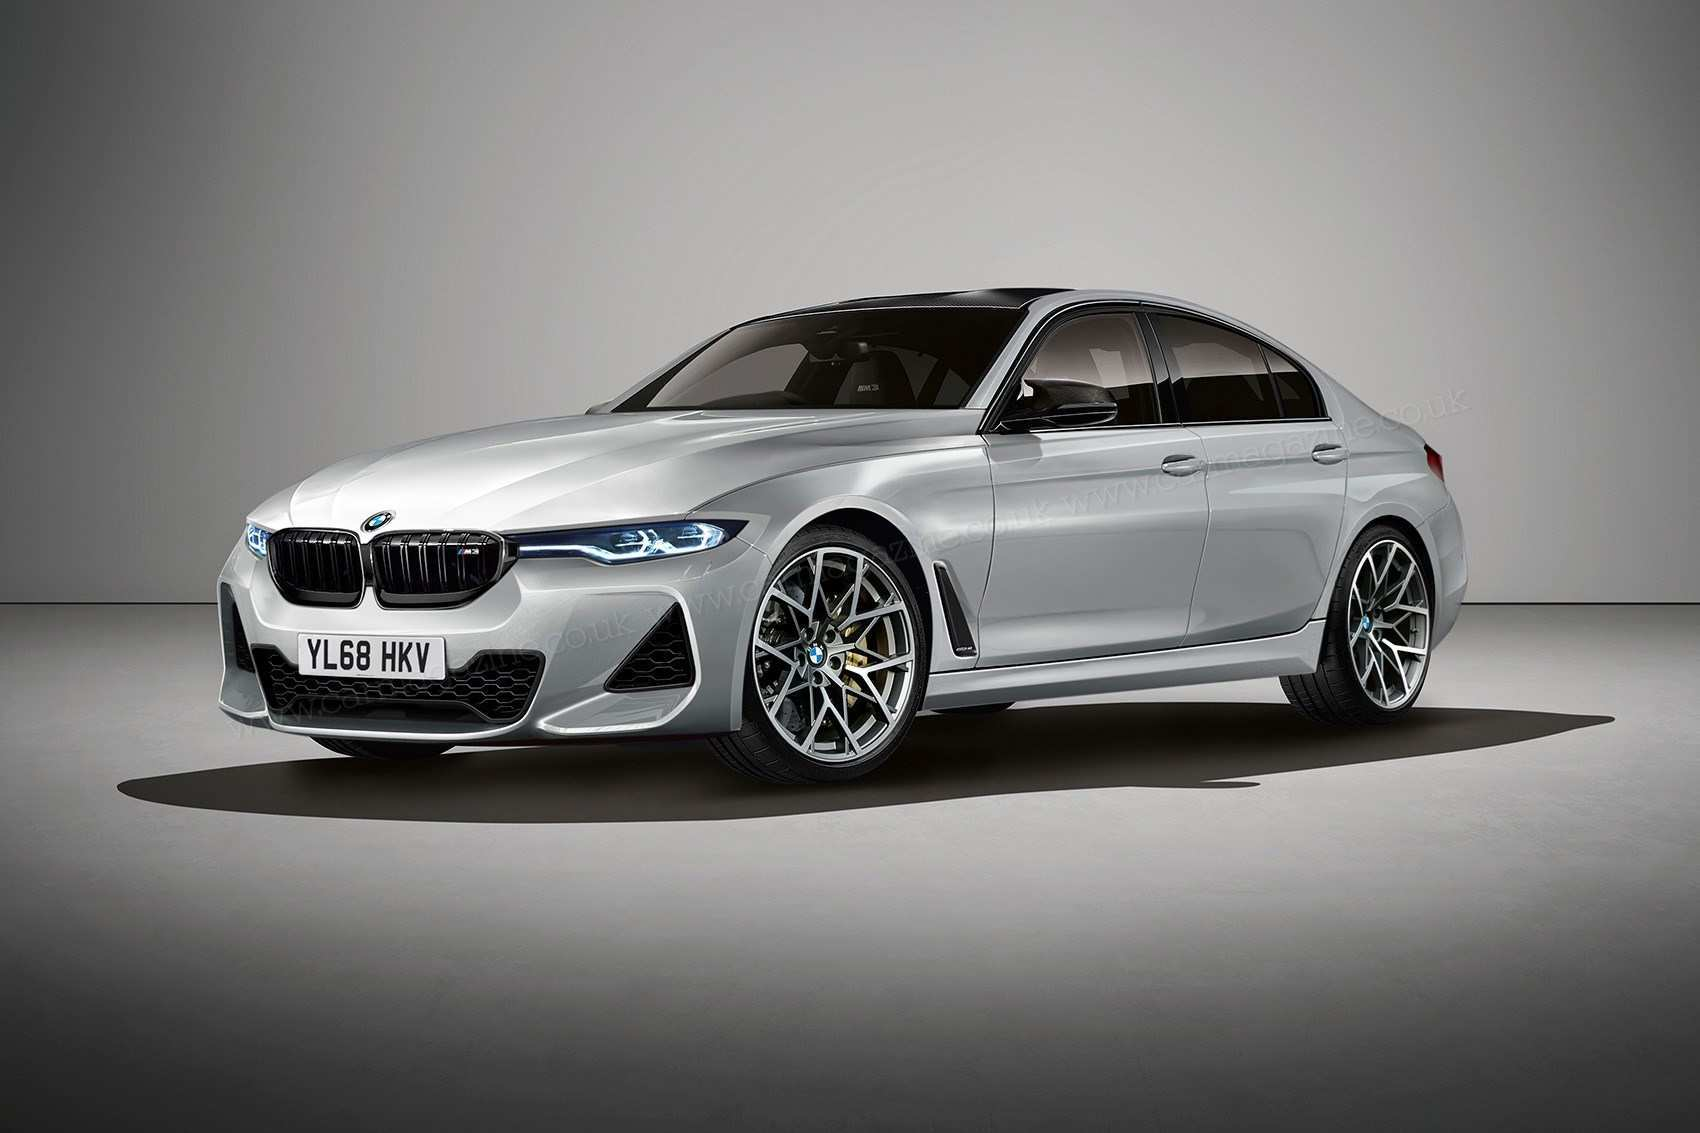 33 All New BMW G30 2020 Redesign and Concept by BMW G30 2020